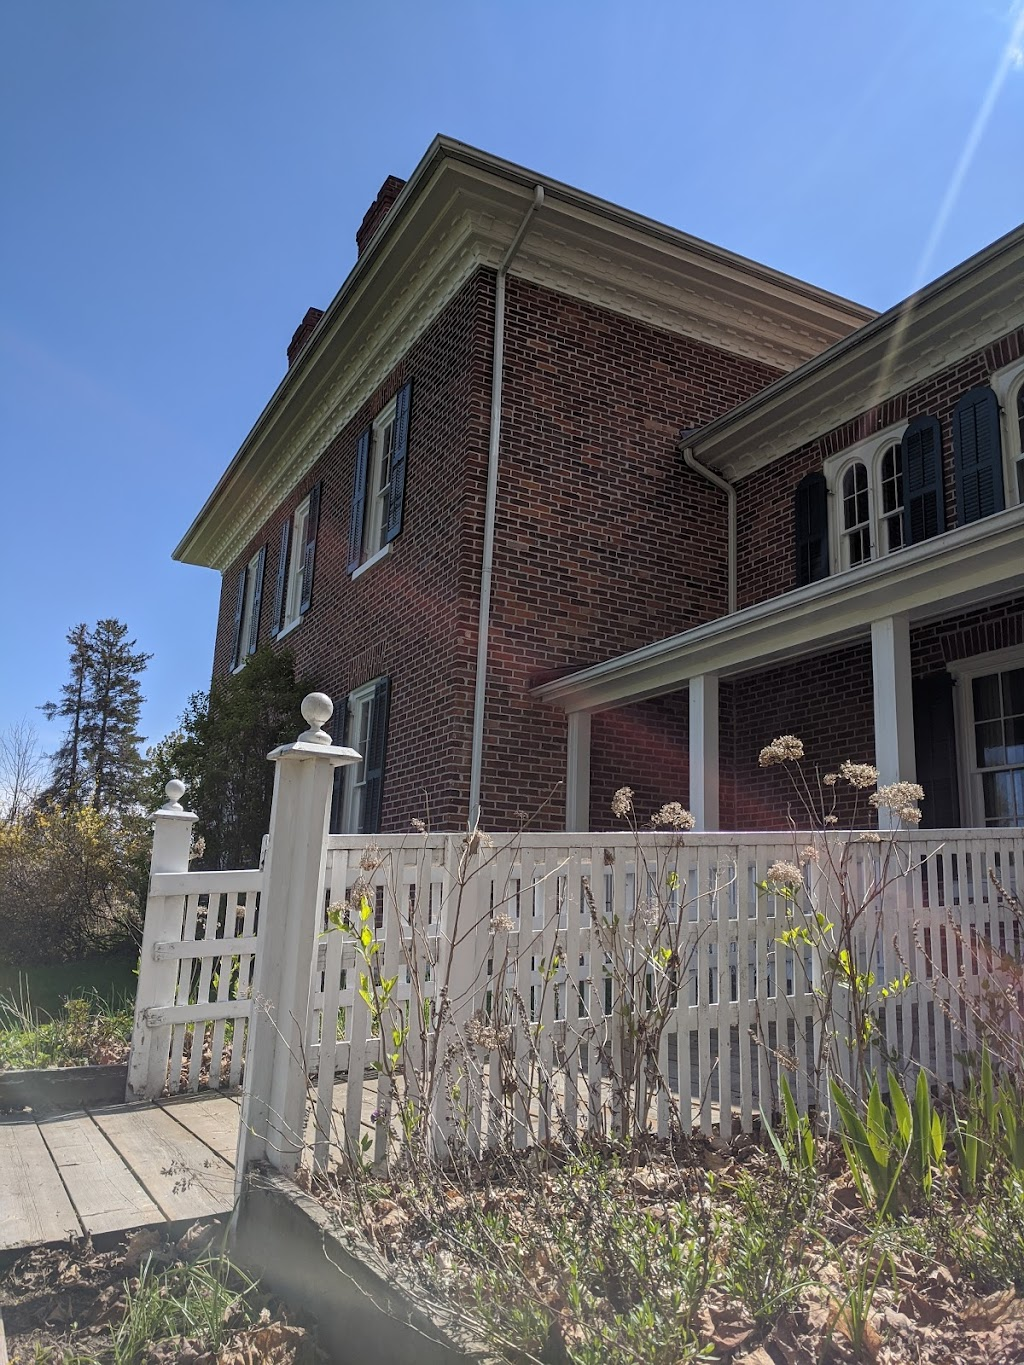 Proctor House Museum   museum   96 Young St, Brighton, ON K0K 1H0, Canada   6134752144 OR +1 613-475-2144